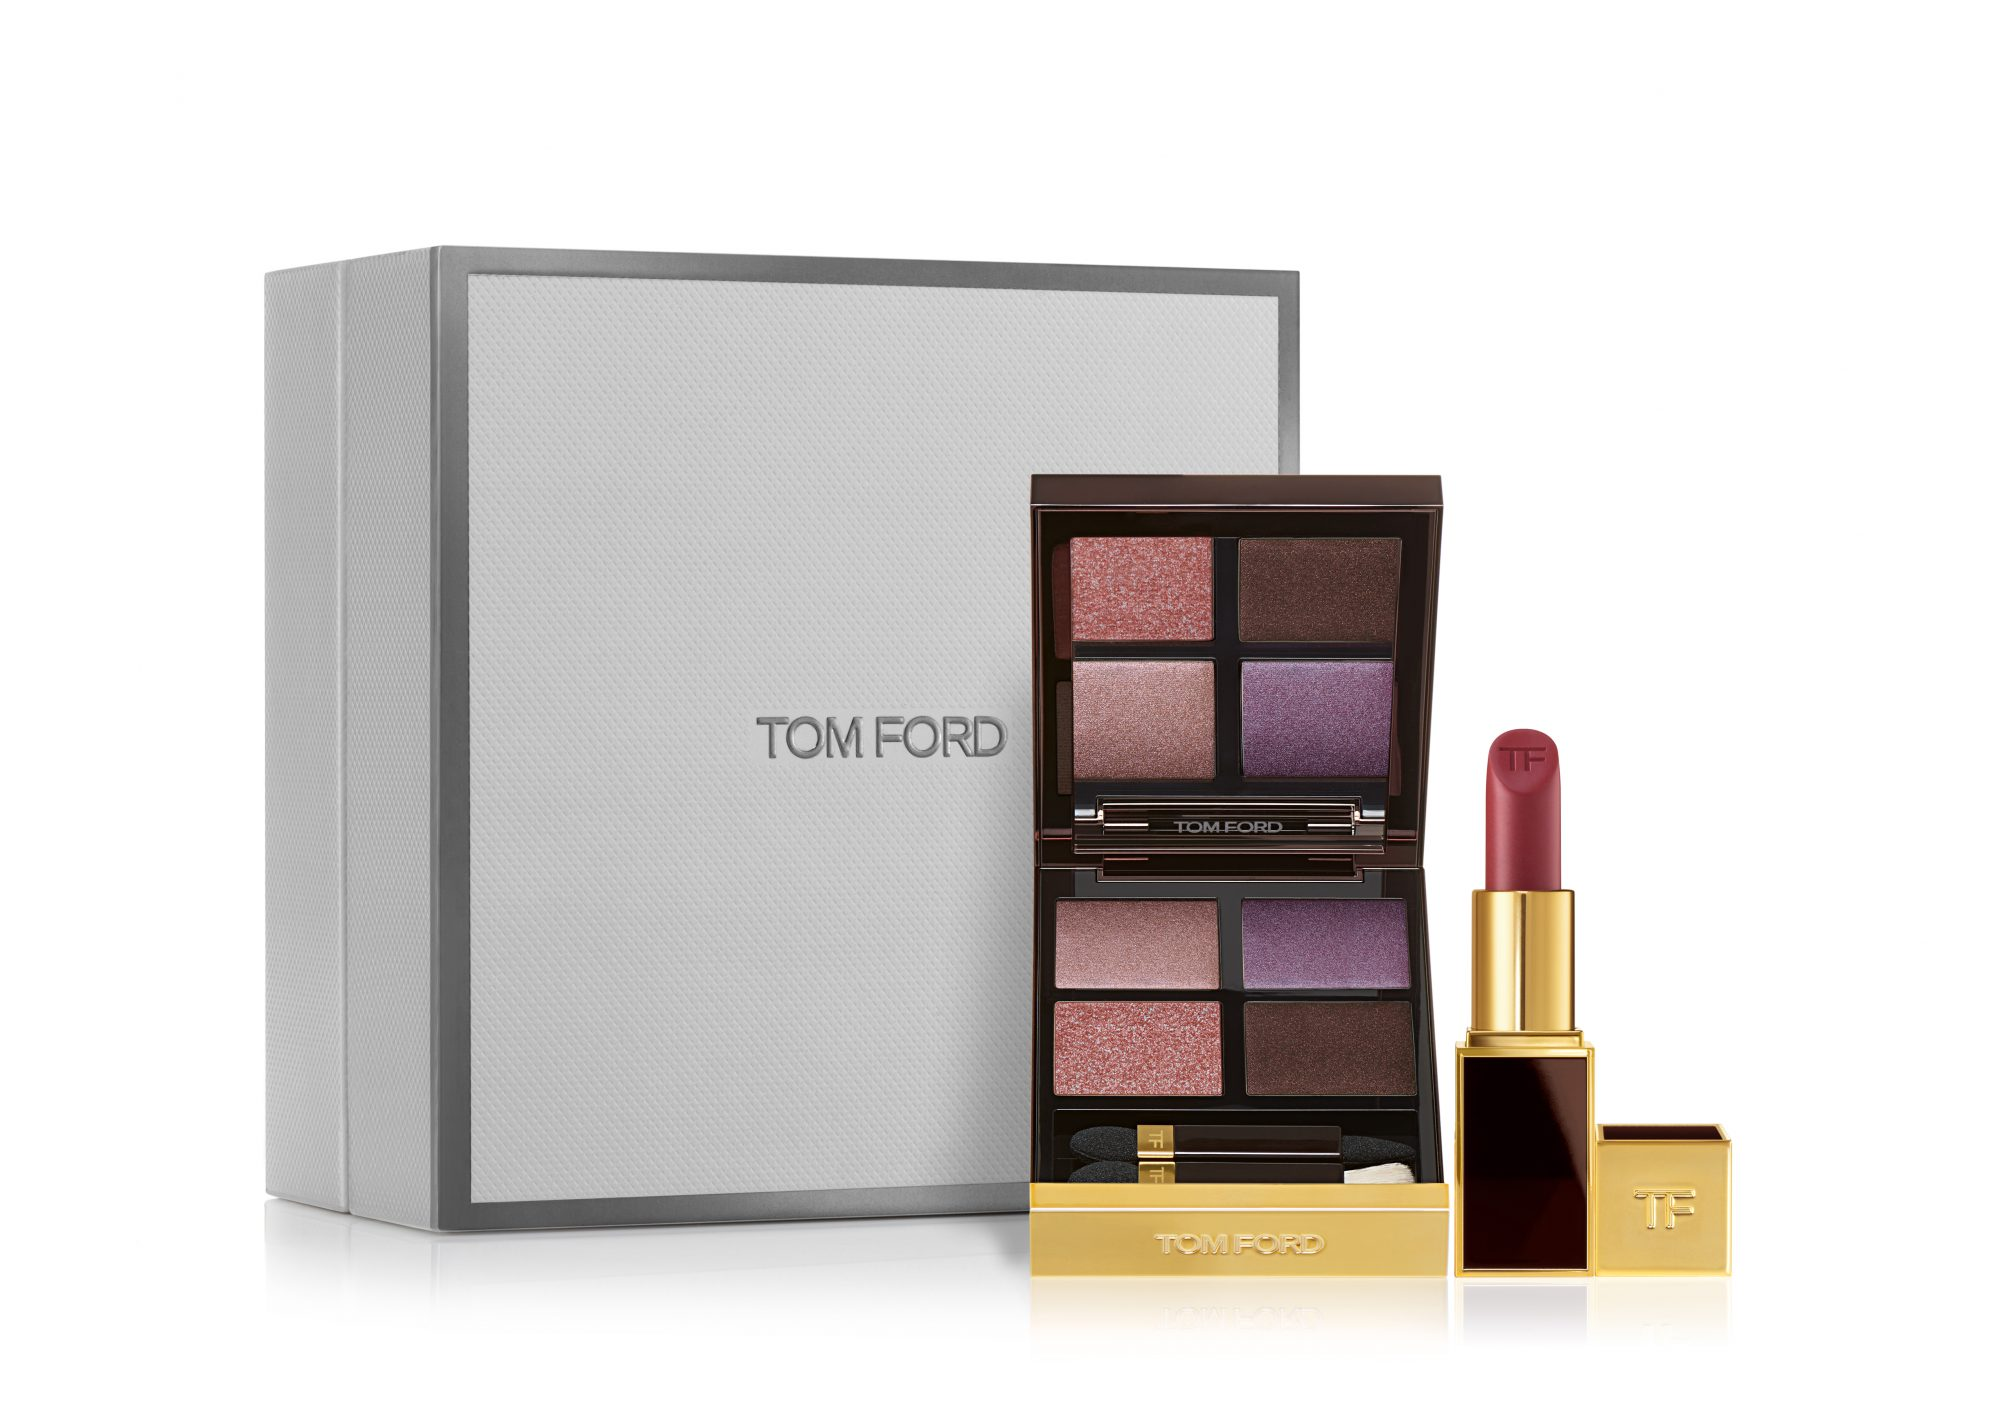 Maquillaje Tom Ford regalos